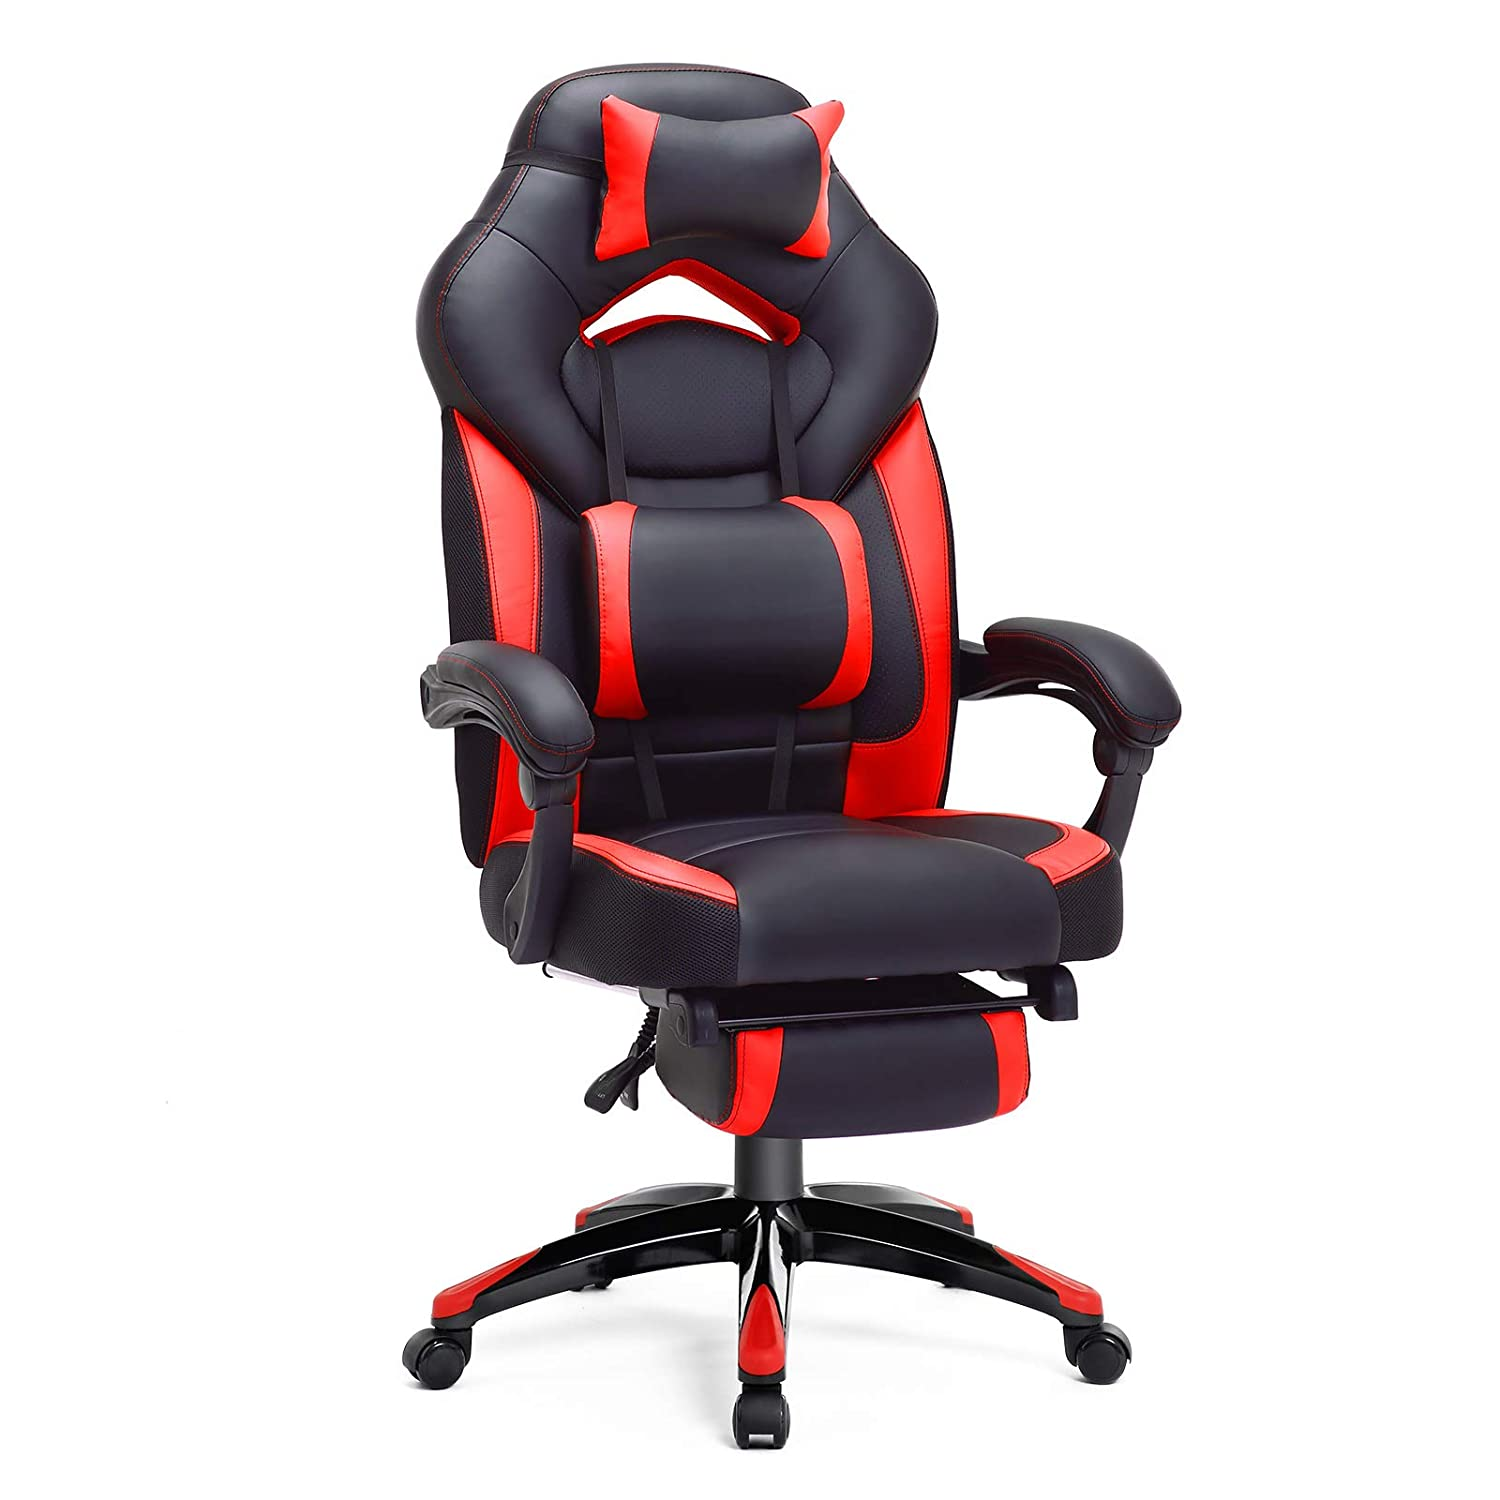 SONGMICS Office Ergonomic Executive Gaming Swivel Chair with Foldable Pull-Out Footrest, Racing Style, Extra Large, Black Red,